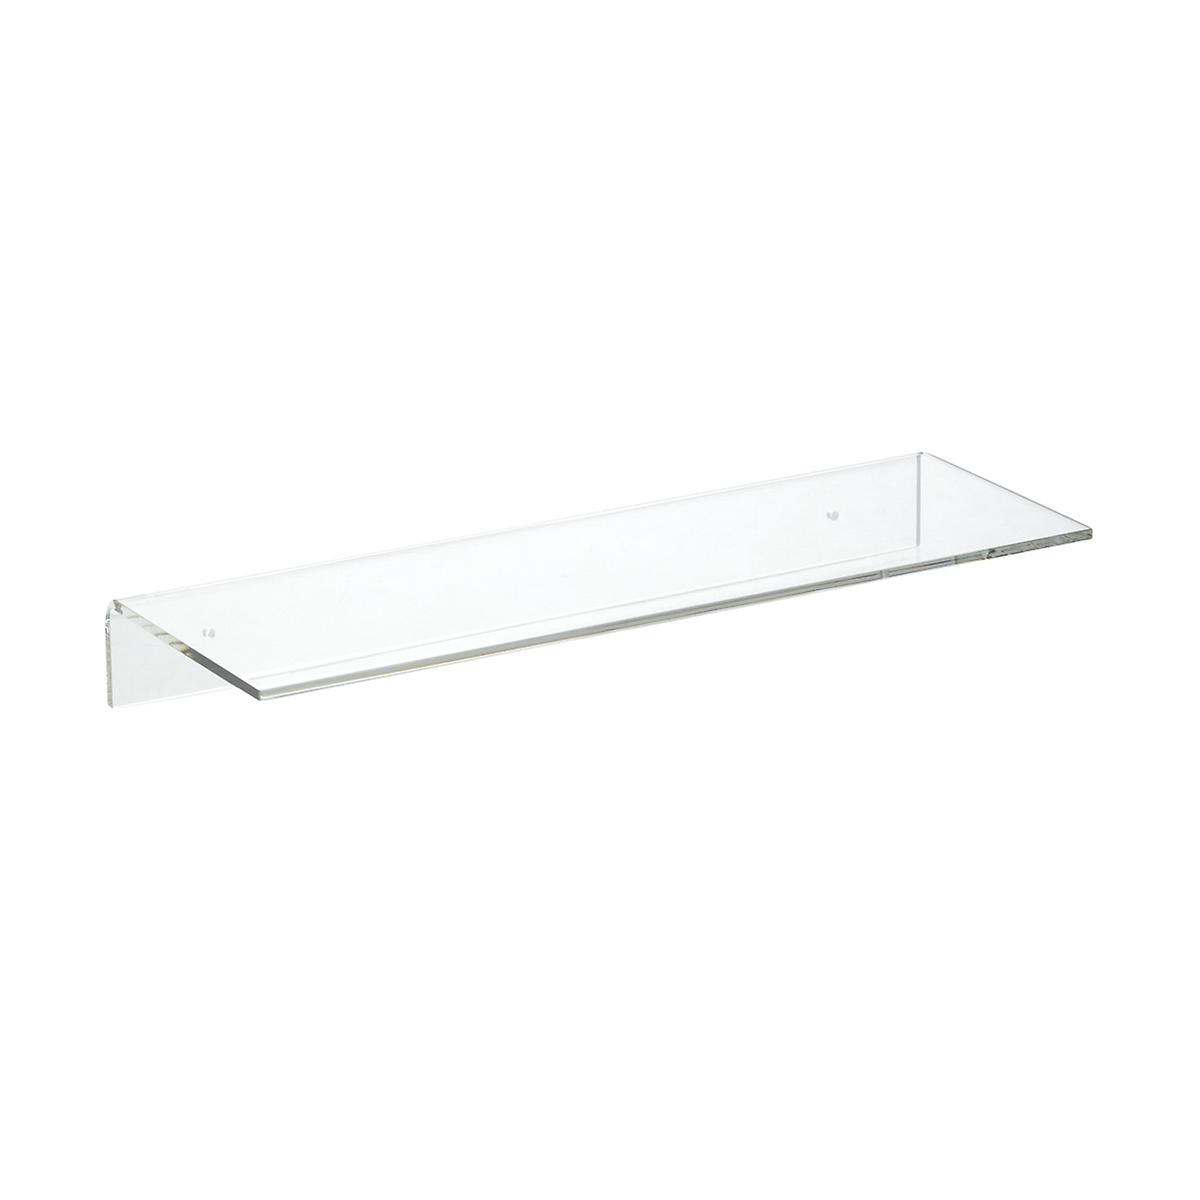 Admirable Single Acrylic Wall Shelves The Container Store Interior Design Ideas Clesiryabchikinfo